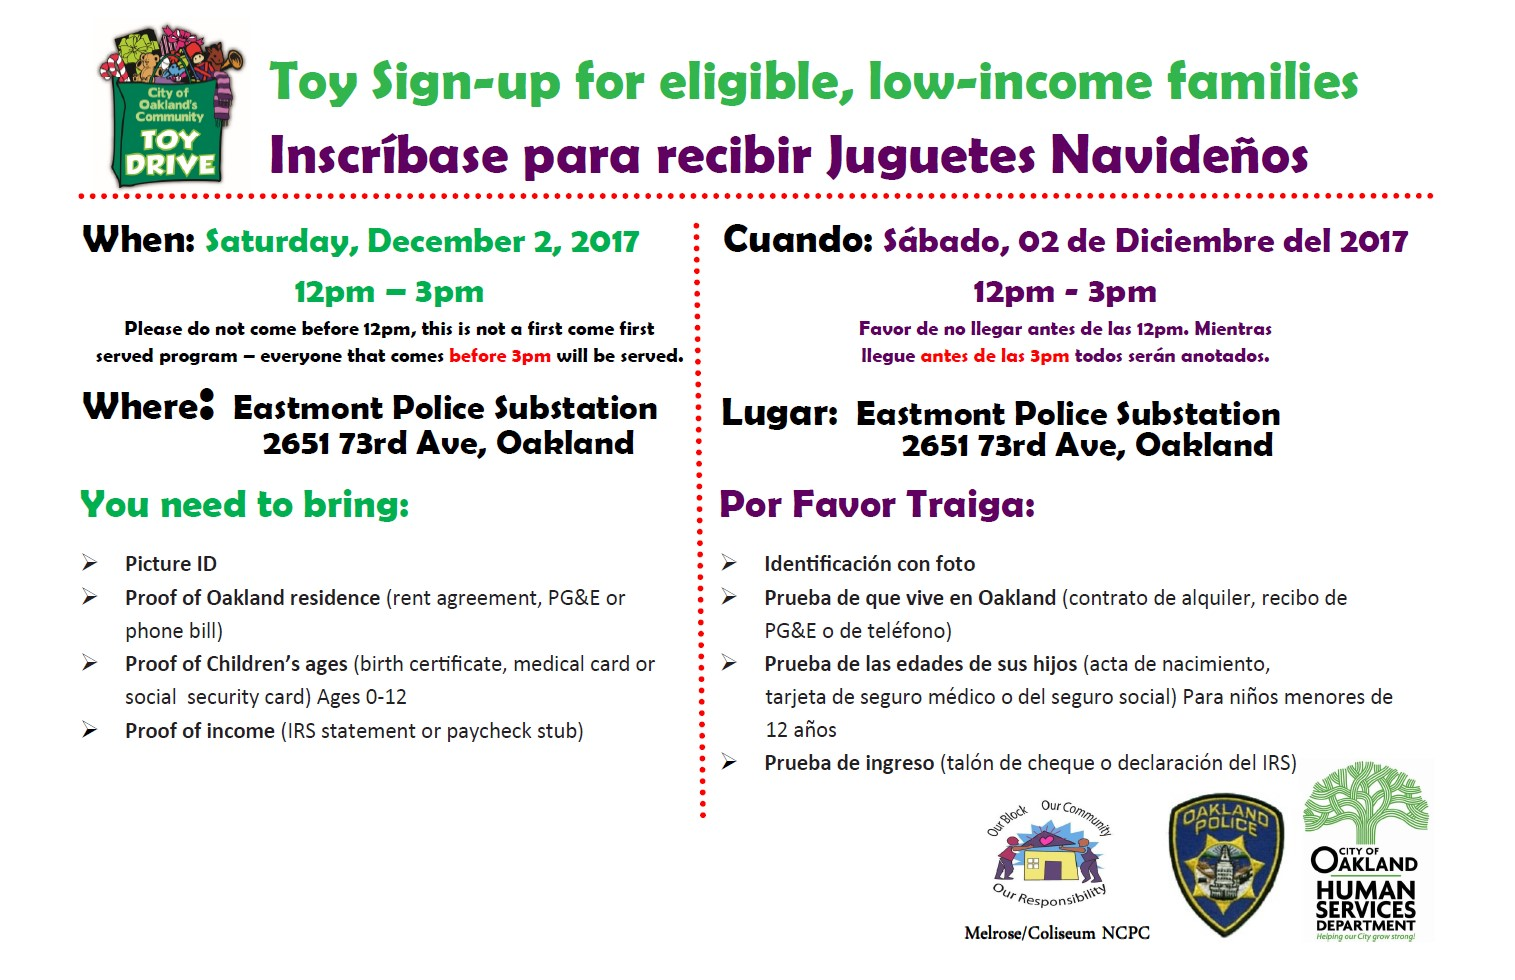 City Of Oakland Communitys Toy Drive Sign Up For Low Income